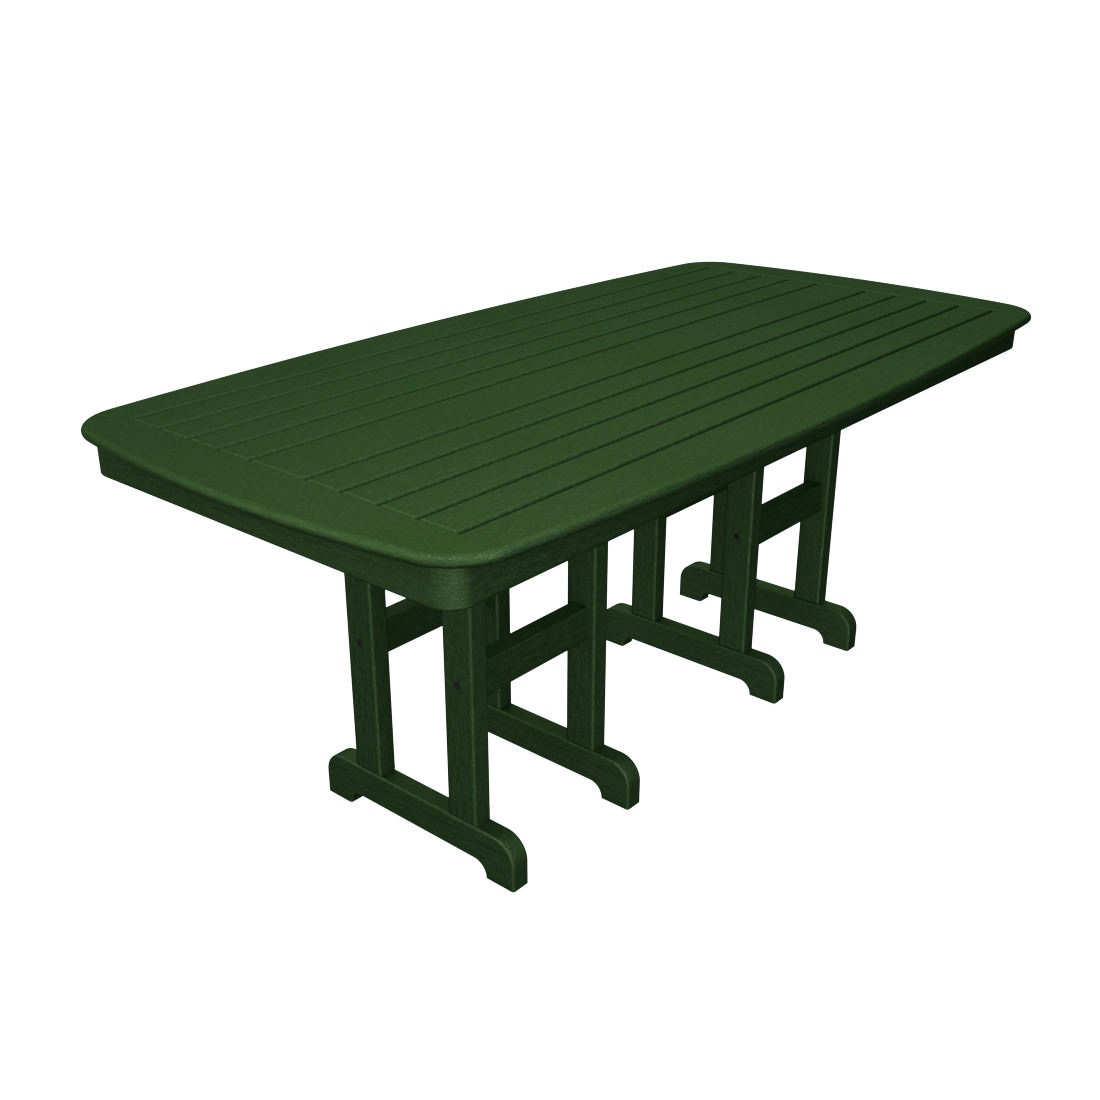 Trex Outdoor Furniture Yacht Club In X In Dining Table - 72 trestle dining table